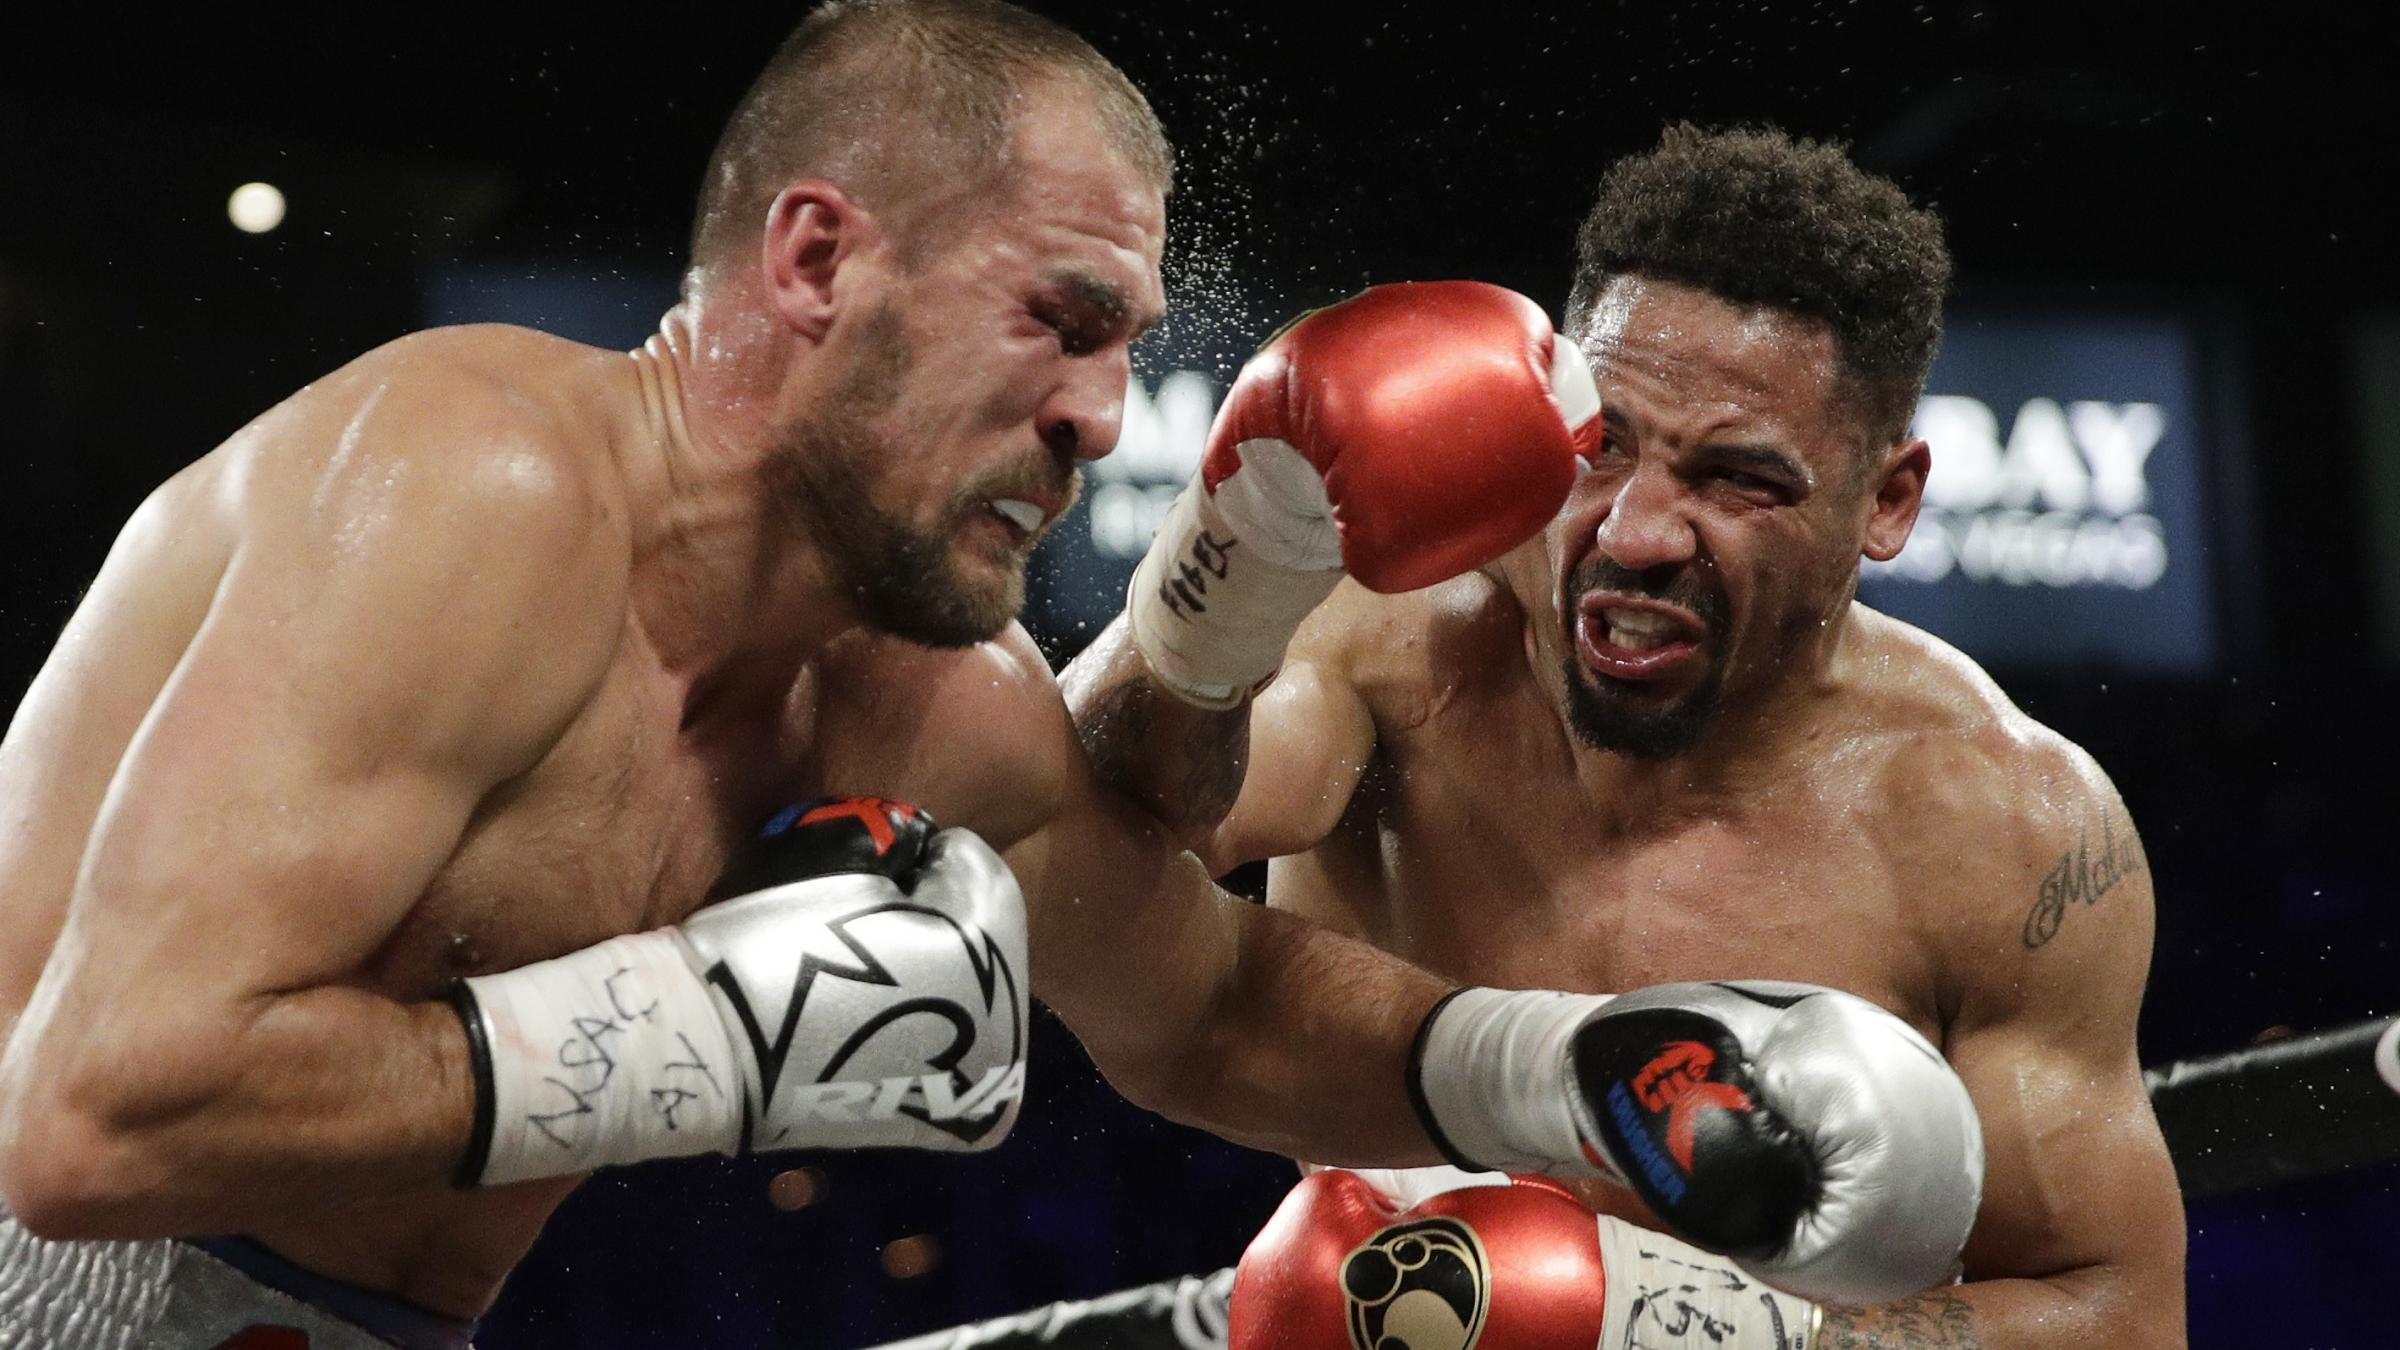 Watch Andre Ward Vs. Sergey Kovalev Live Online